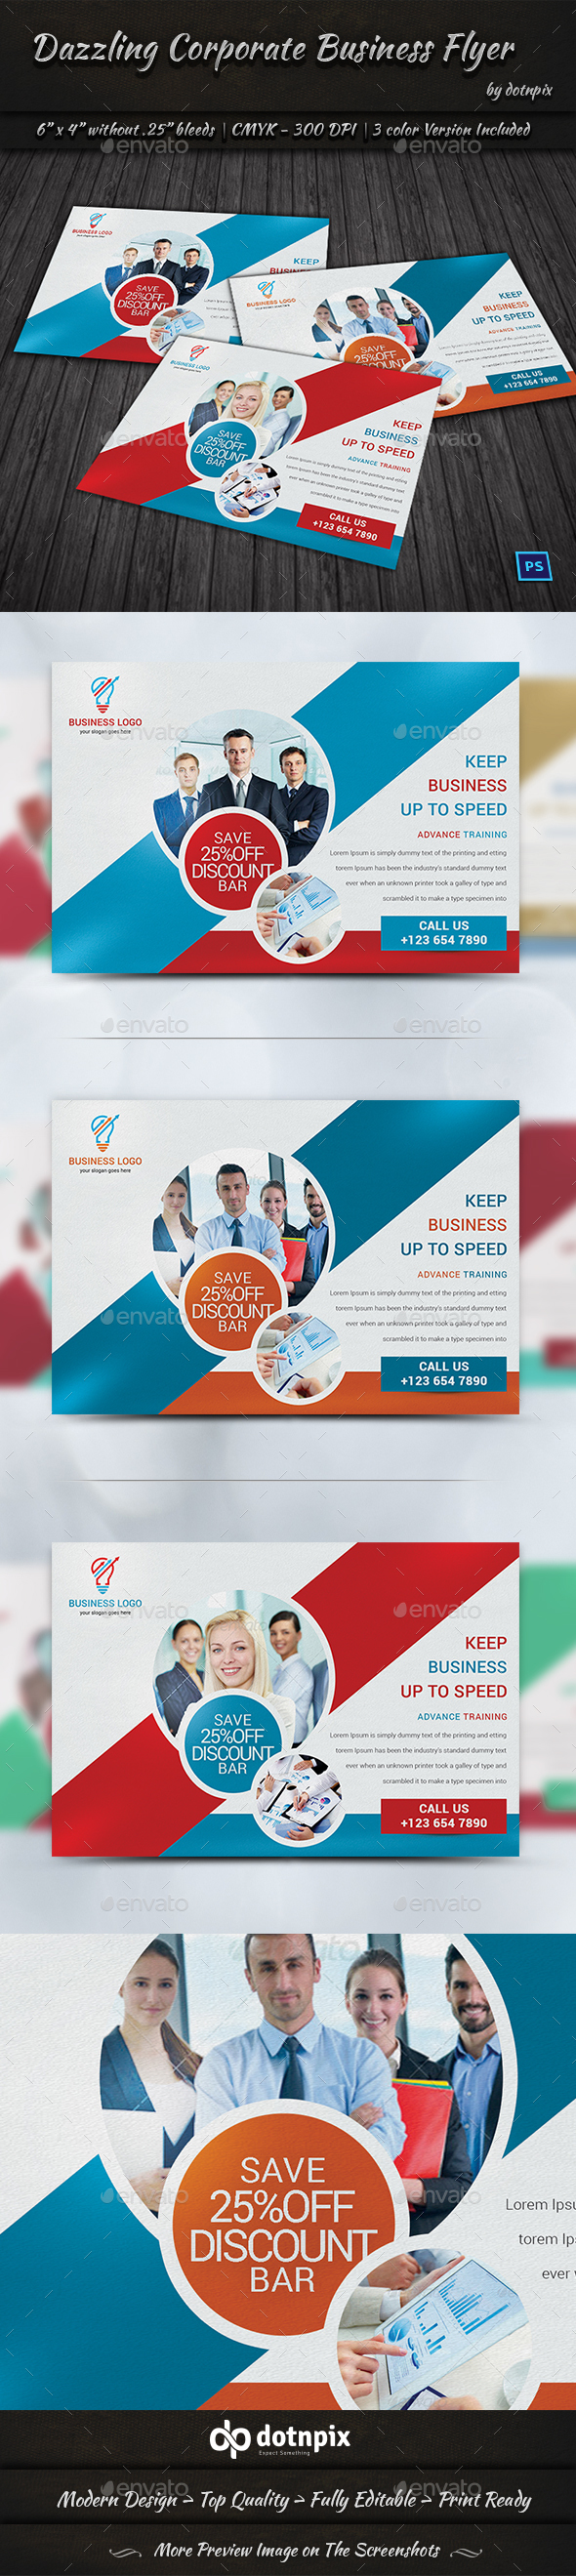 Dazzling Corporate Business Flyer - Corporate Flyers